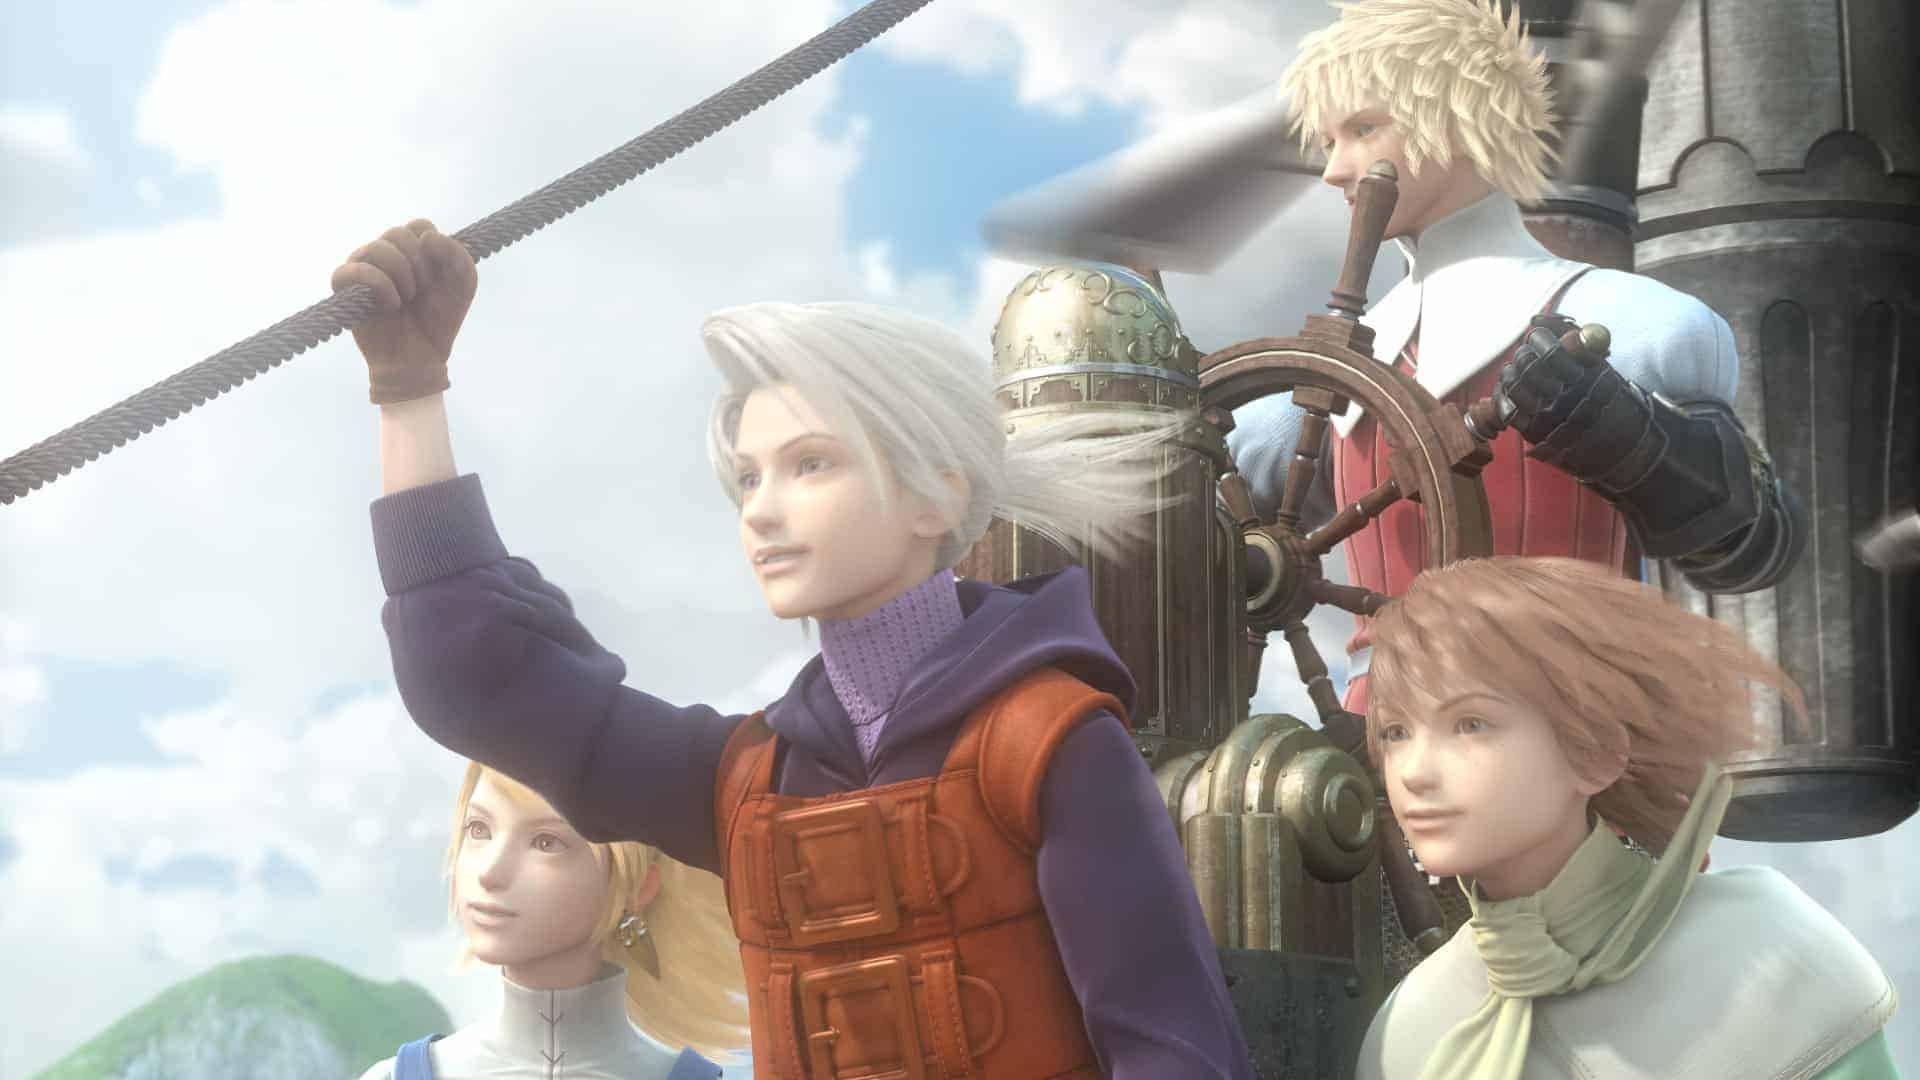 Final Fantasy III Remake